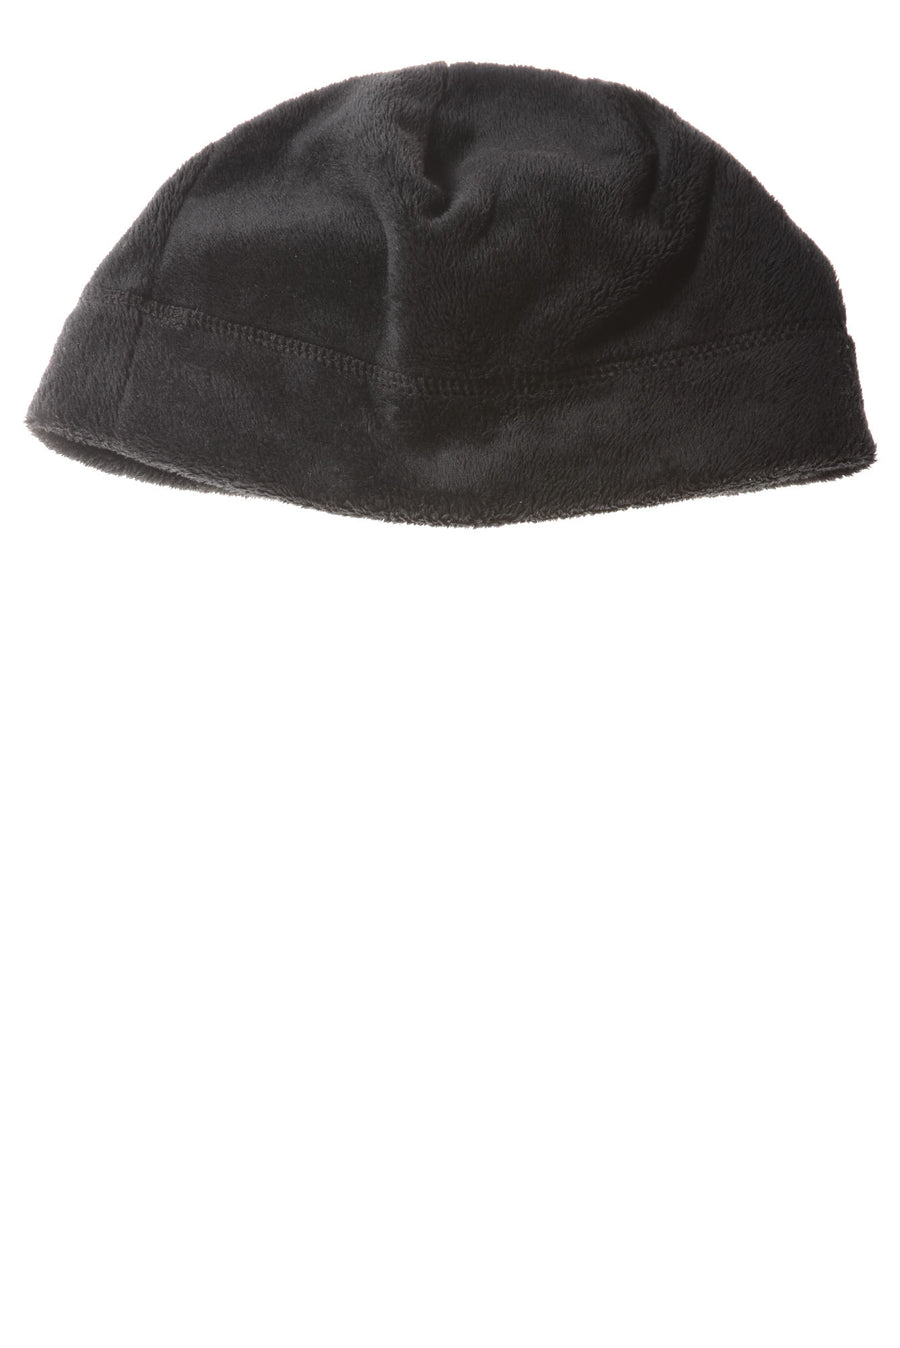 USED Champion Women's Hat One Size Black